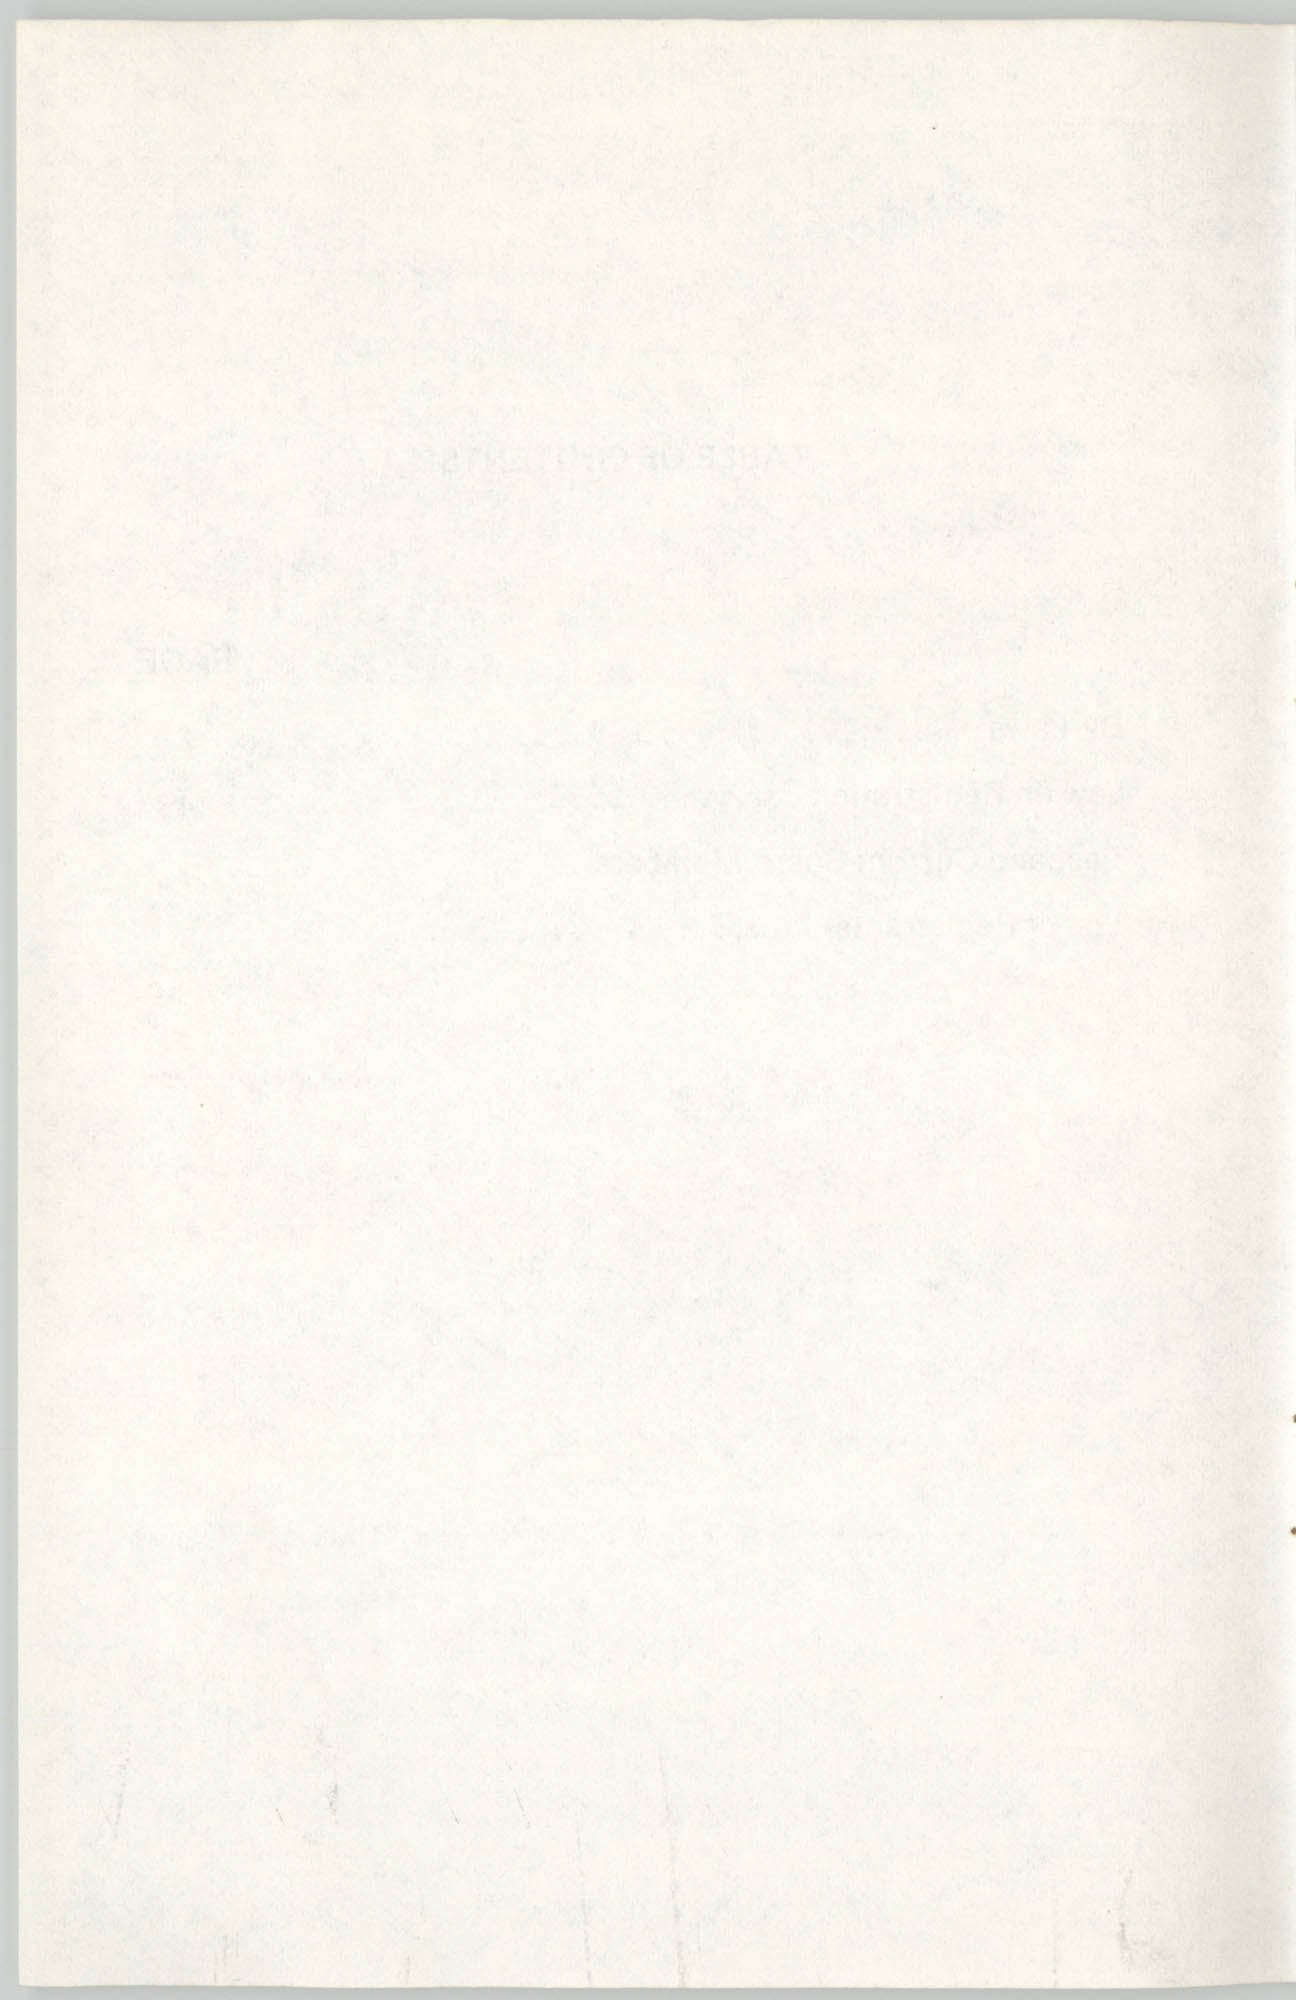 State of South Carolina Directory of Registered Social Workers, 1977, Page 1